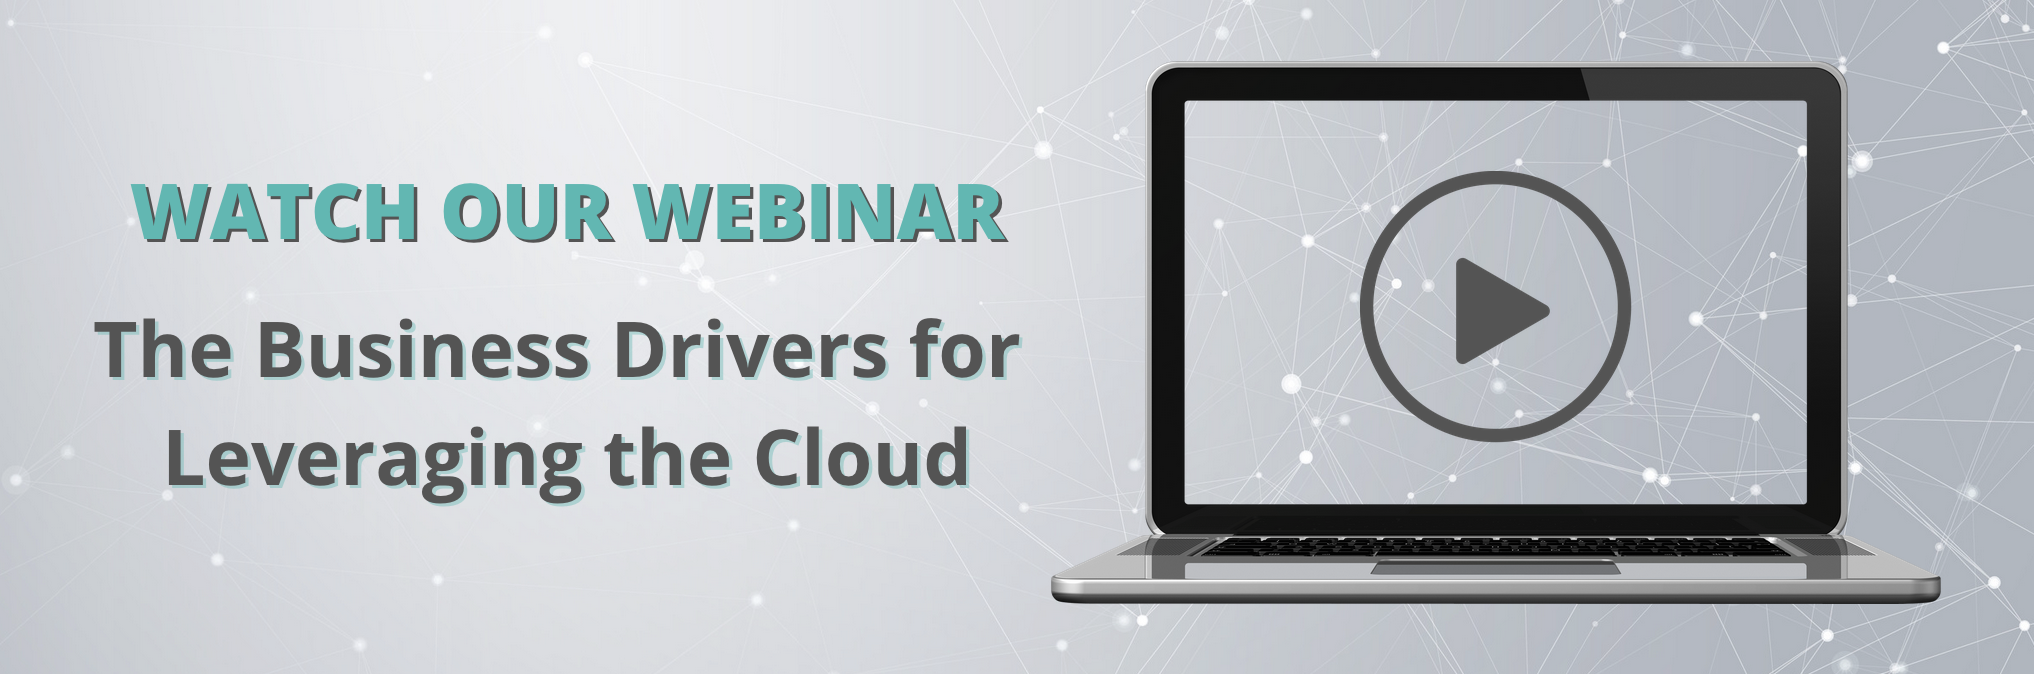 Watch Our Webinar - The Business Drivers for Leveraging the Cloud